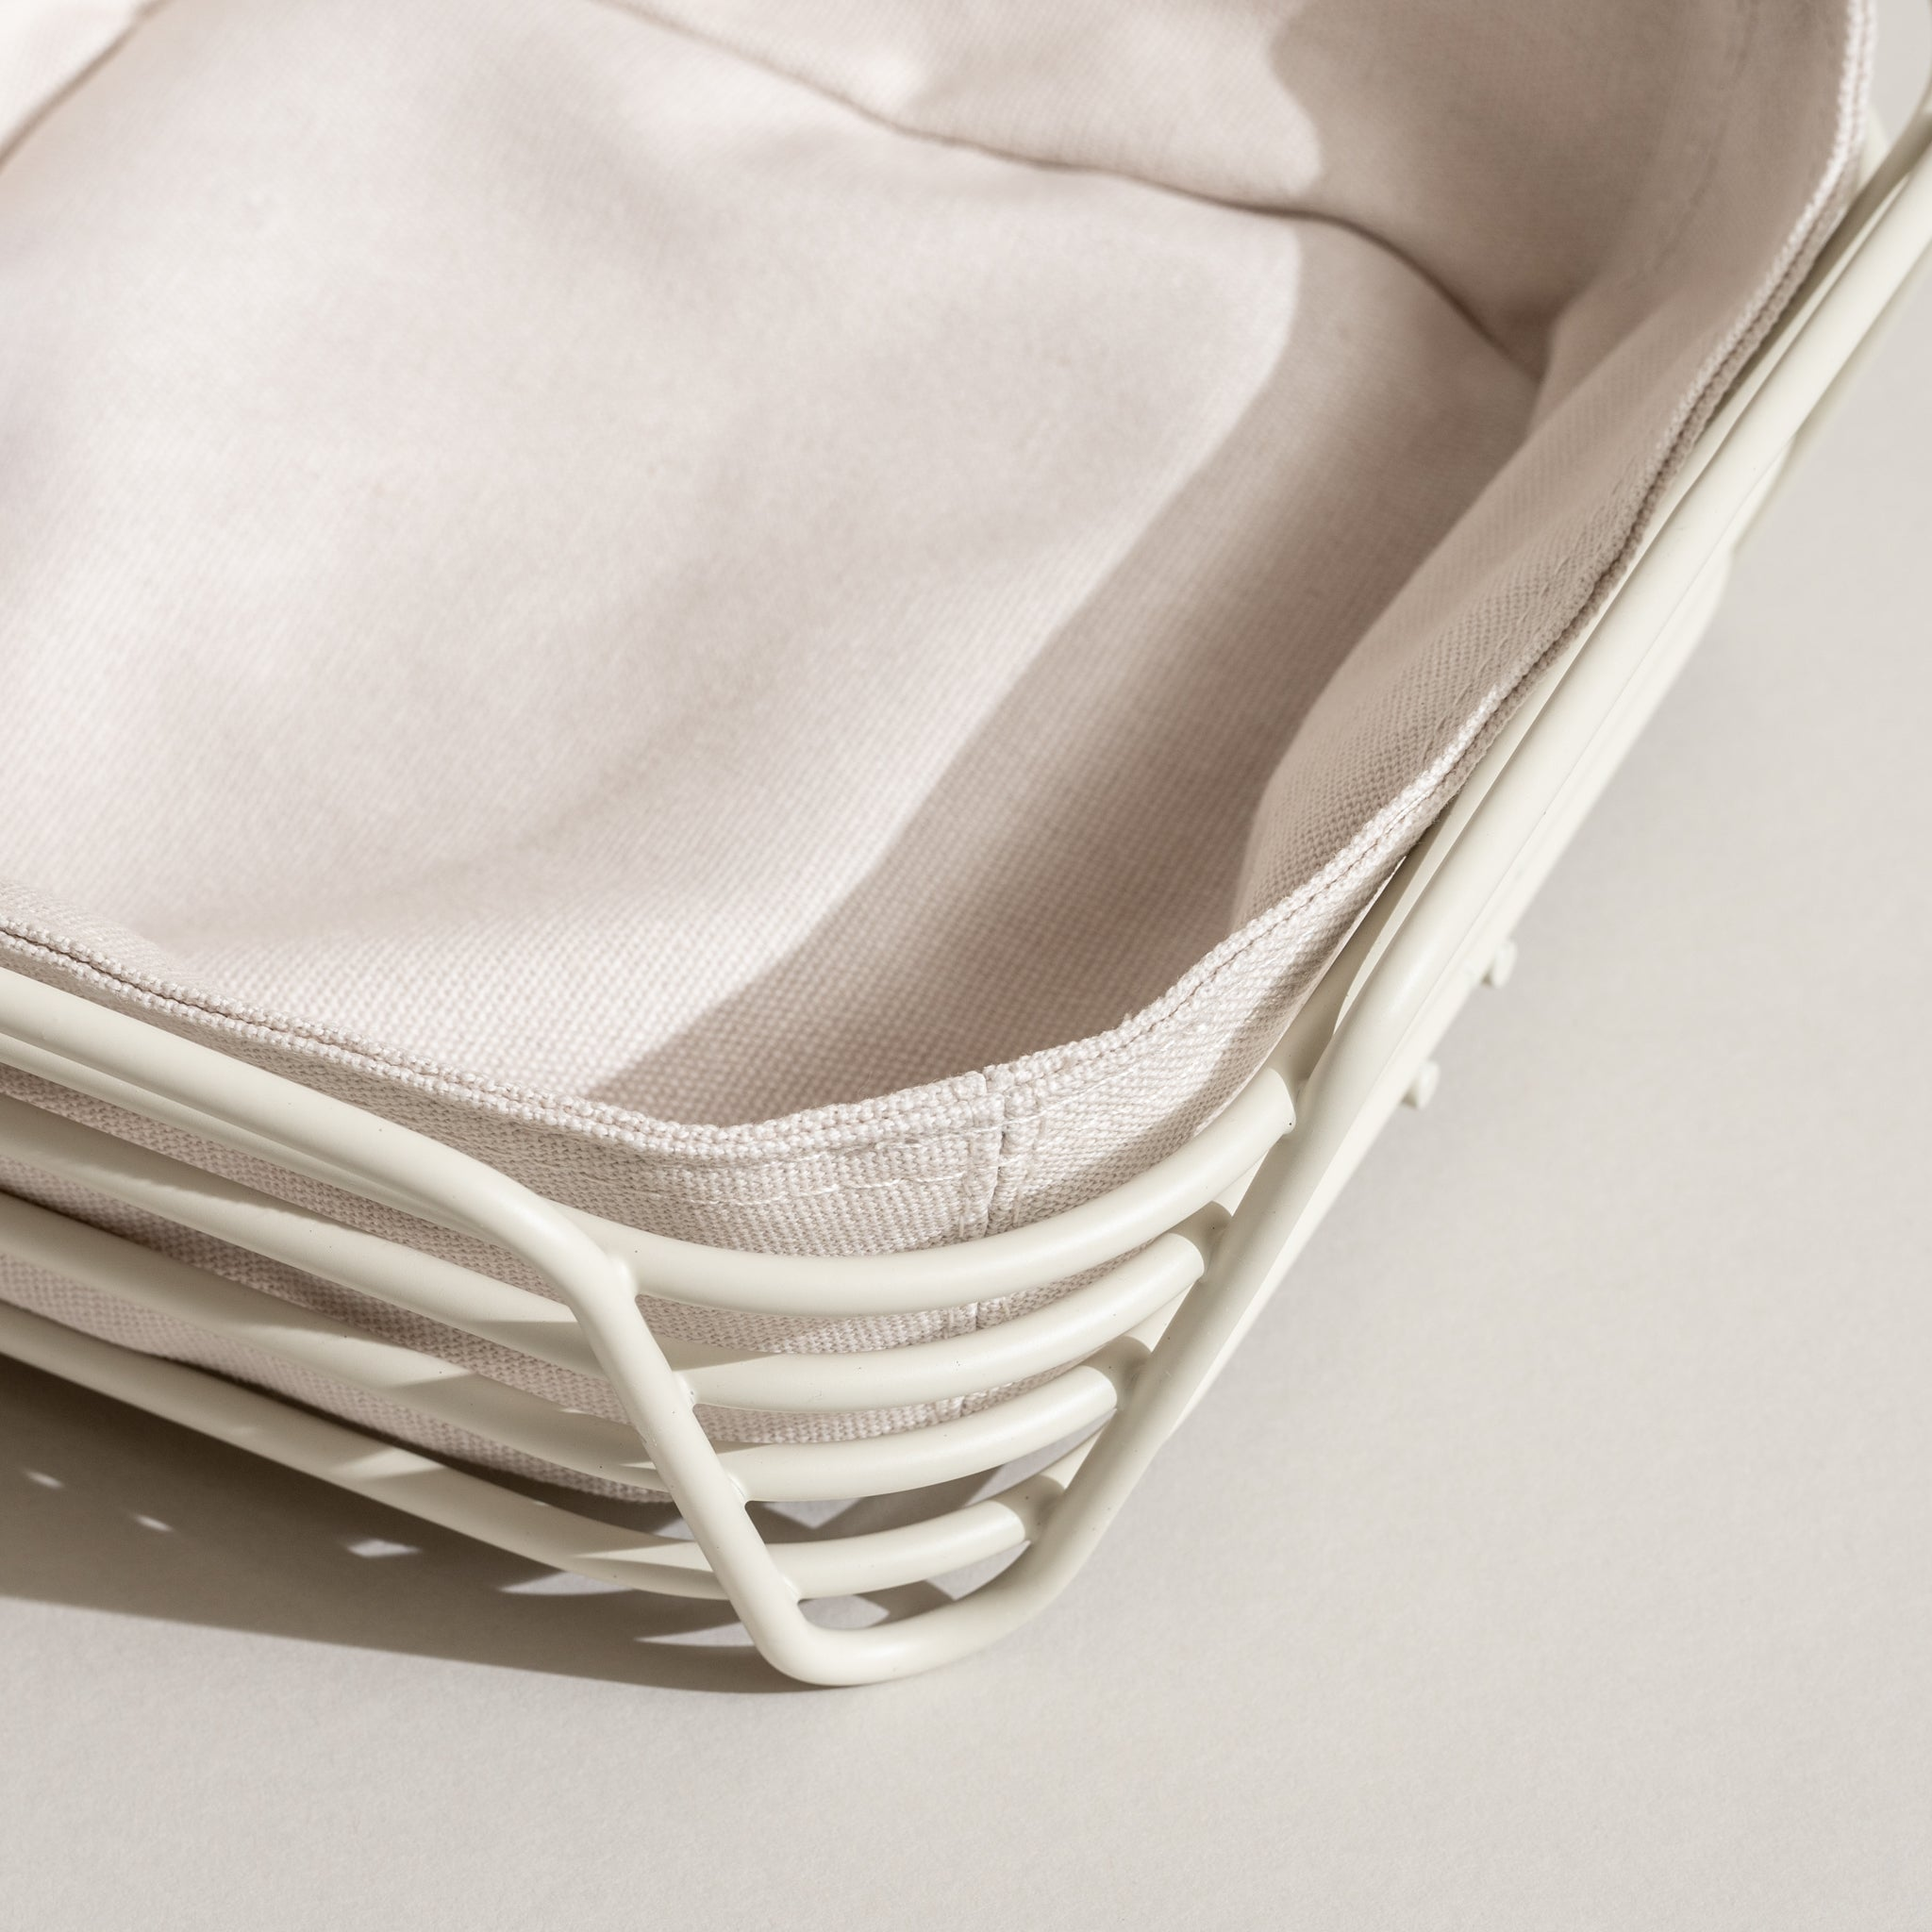 Delara Wire Serving Basket